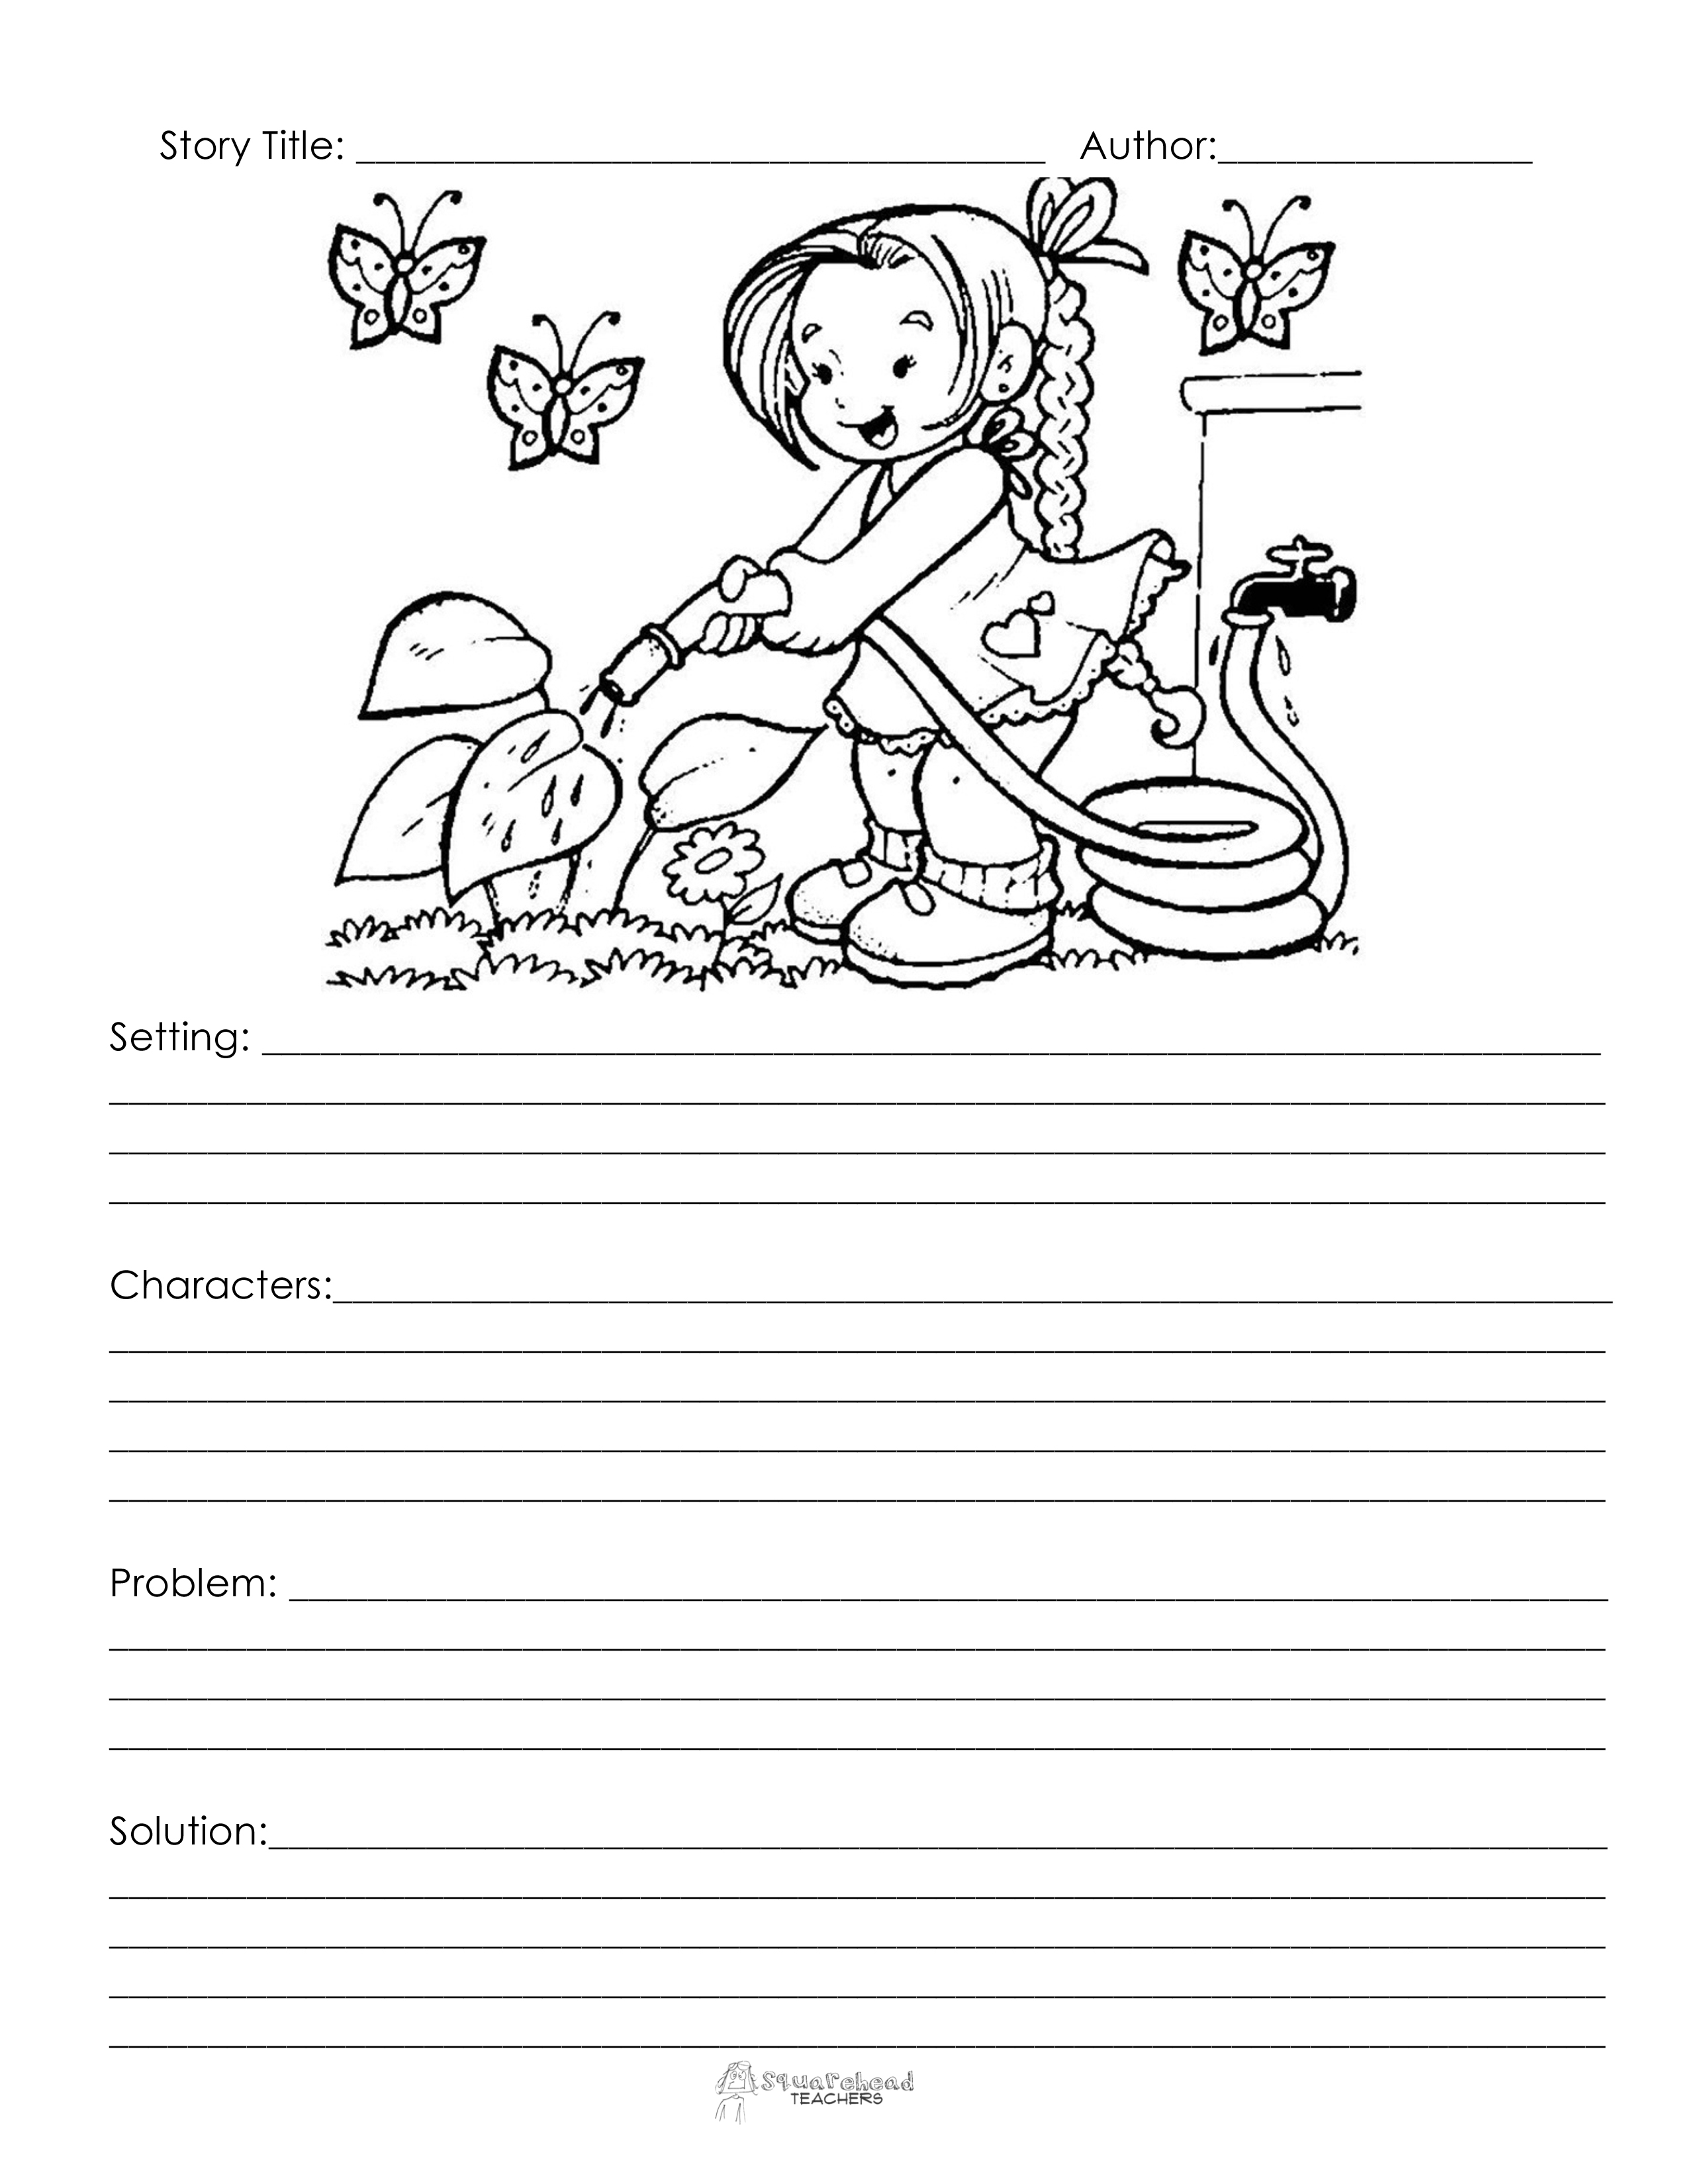 HD wallpapers fall worksheets for kindergarten